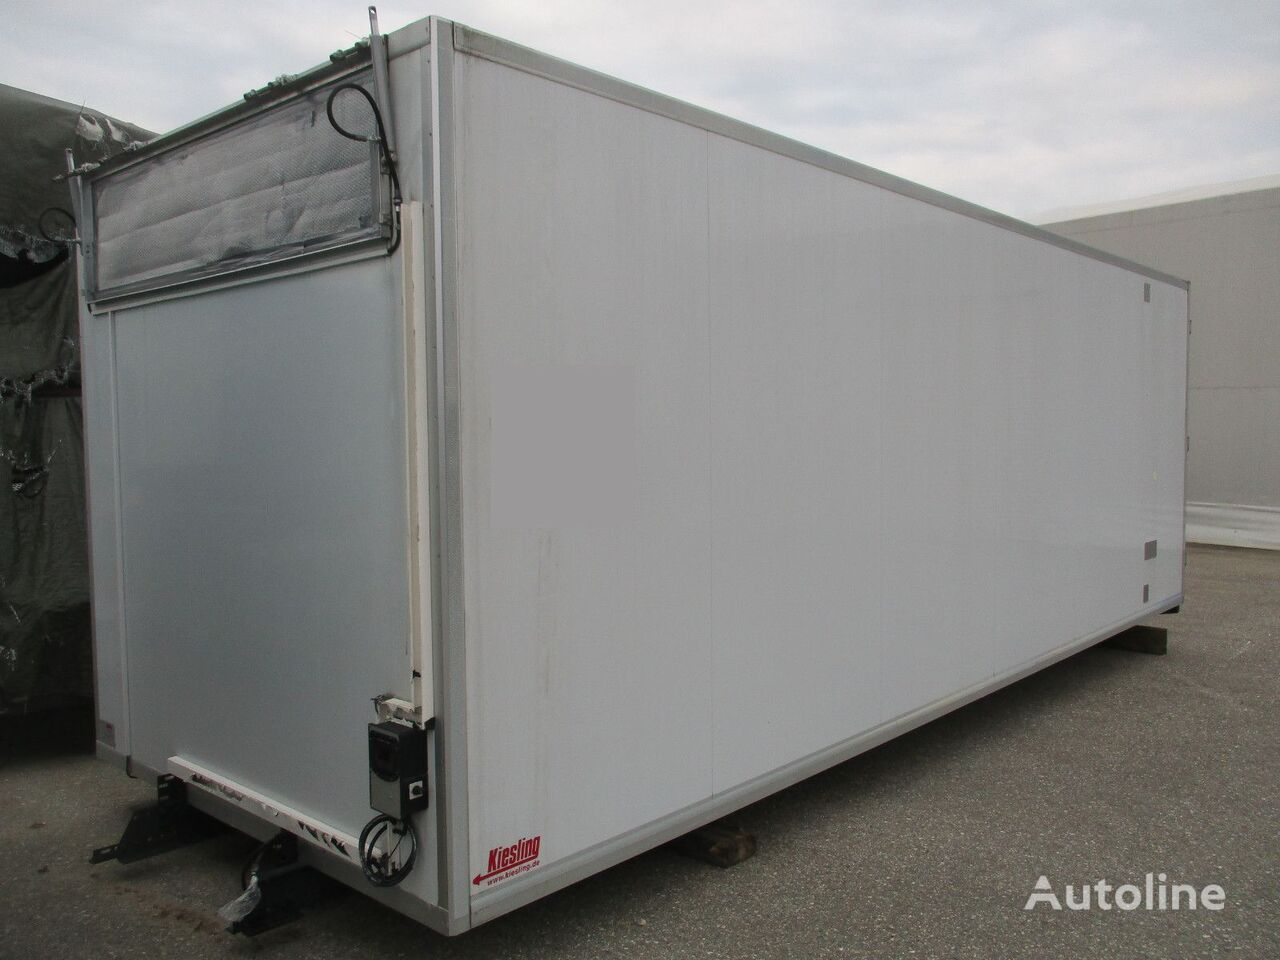 MERCEDES-BENZ Actros 2548L BDF  chassis truck